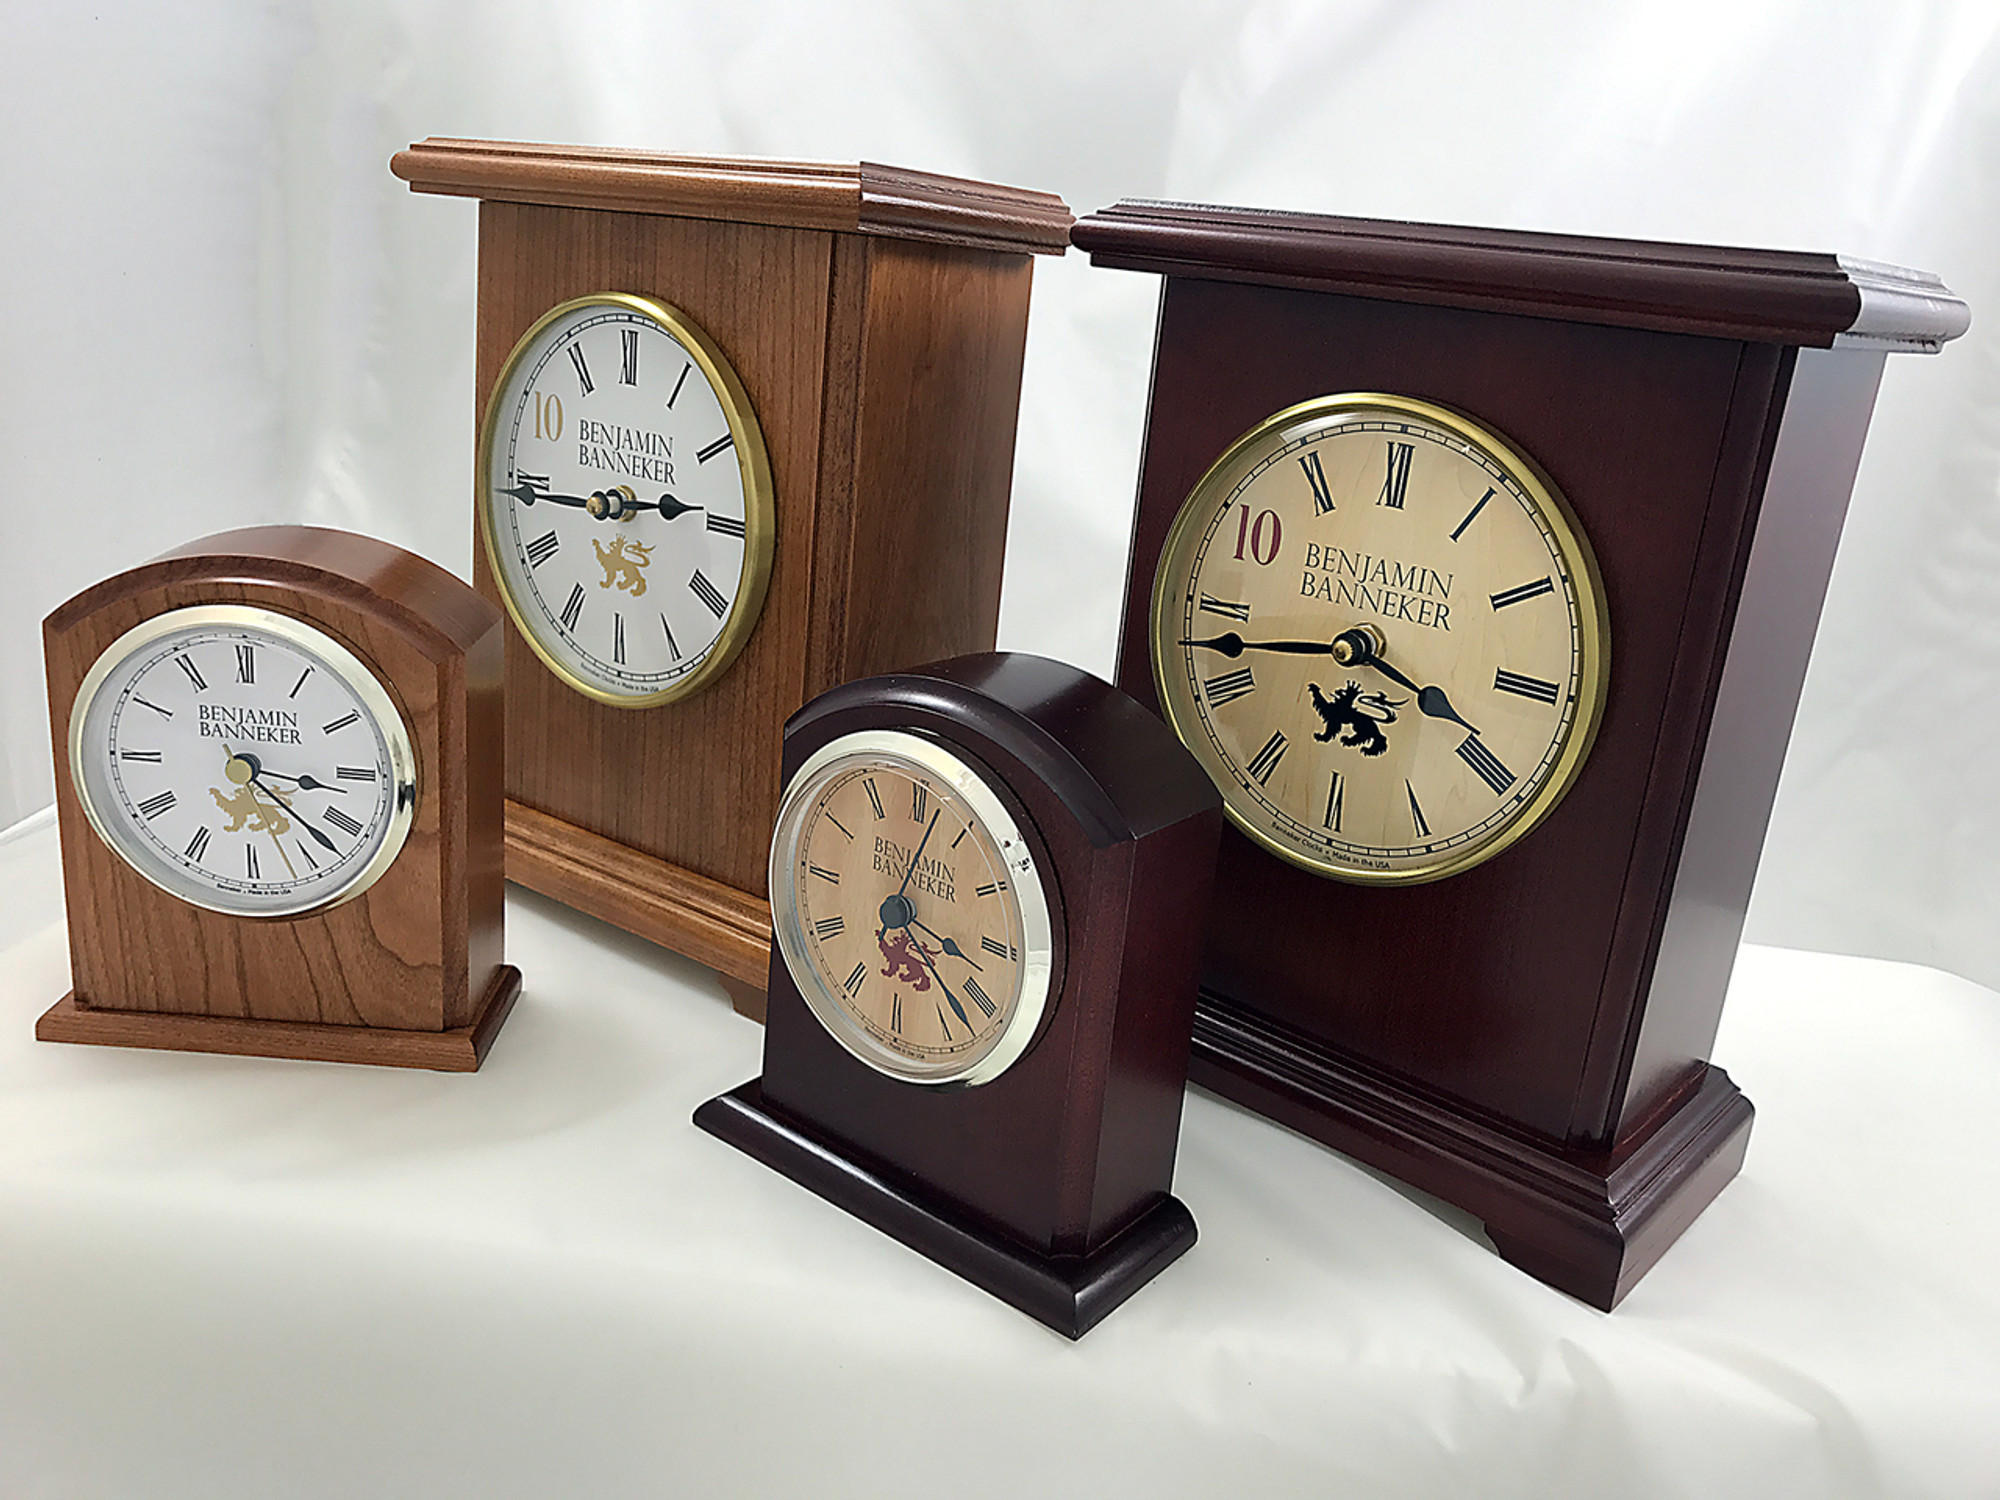 dbbeb13d5e2b4 ... The smaller Banneker Clocks are the 3500 BC Desk Clock made from a  solid block of